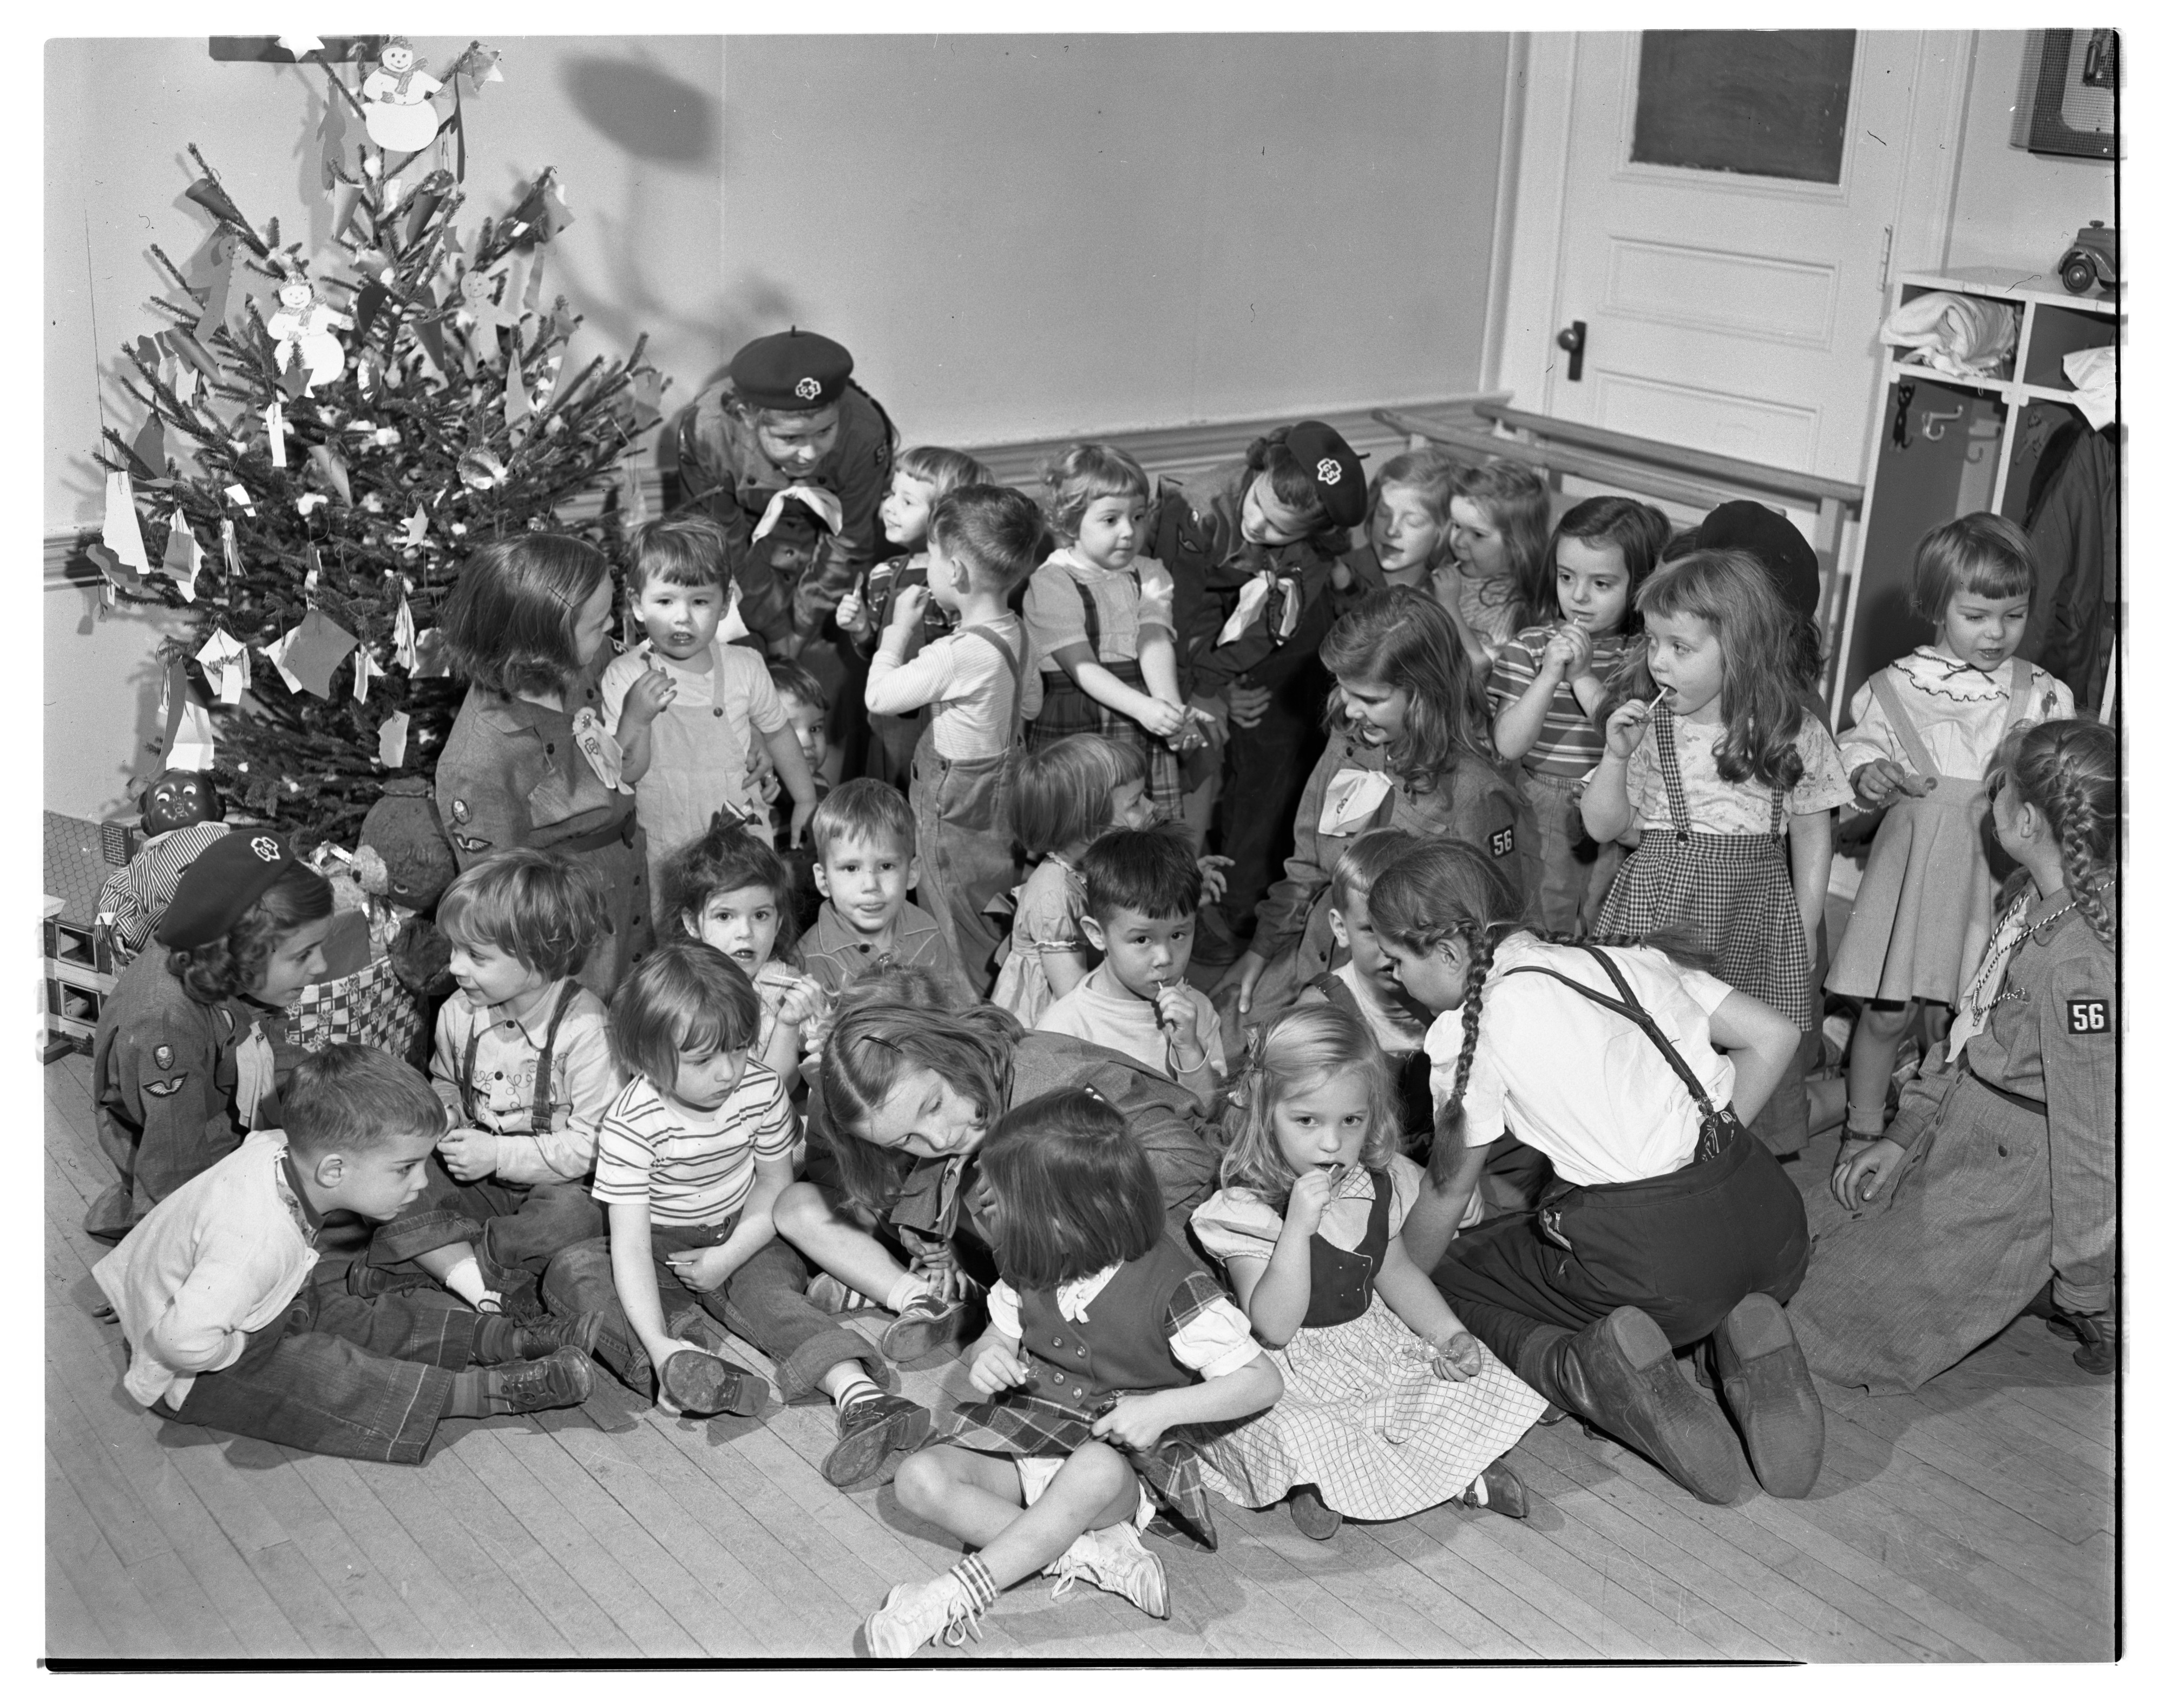 Girl Scouts Throw Party For Perry Nursery School Students, December 1949 image